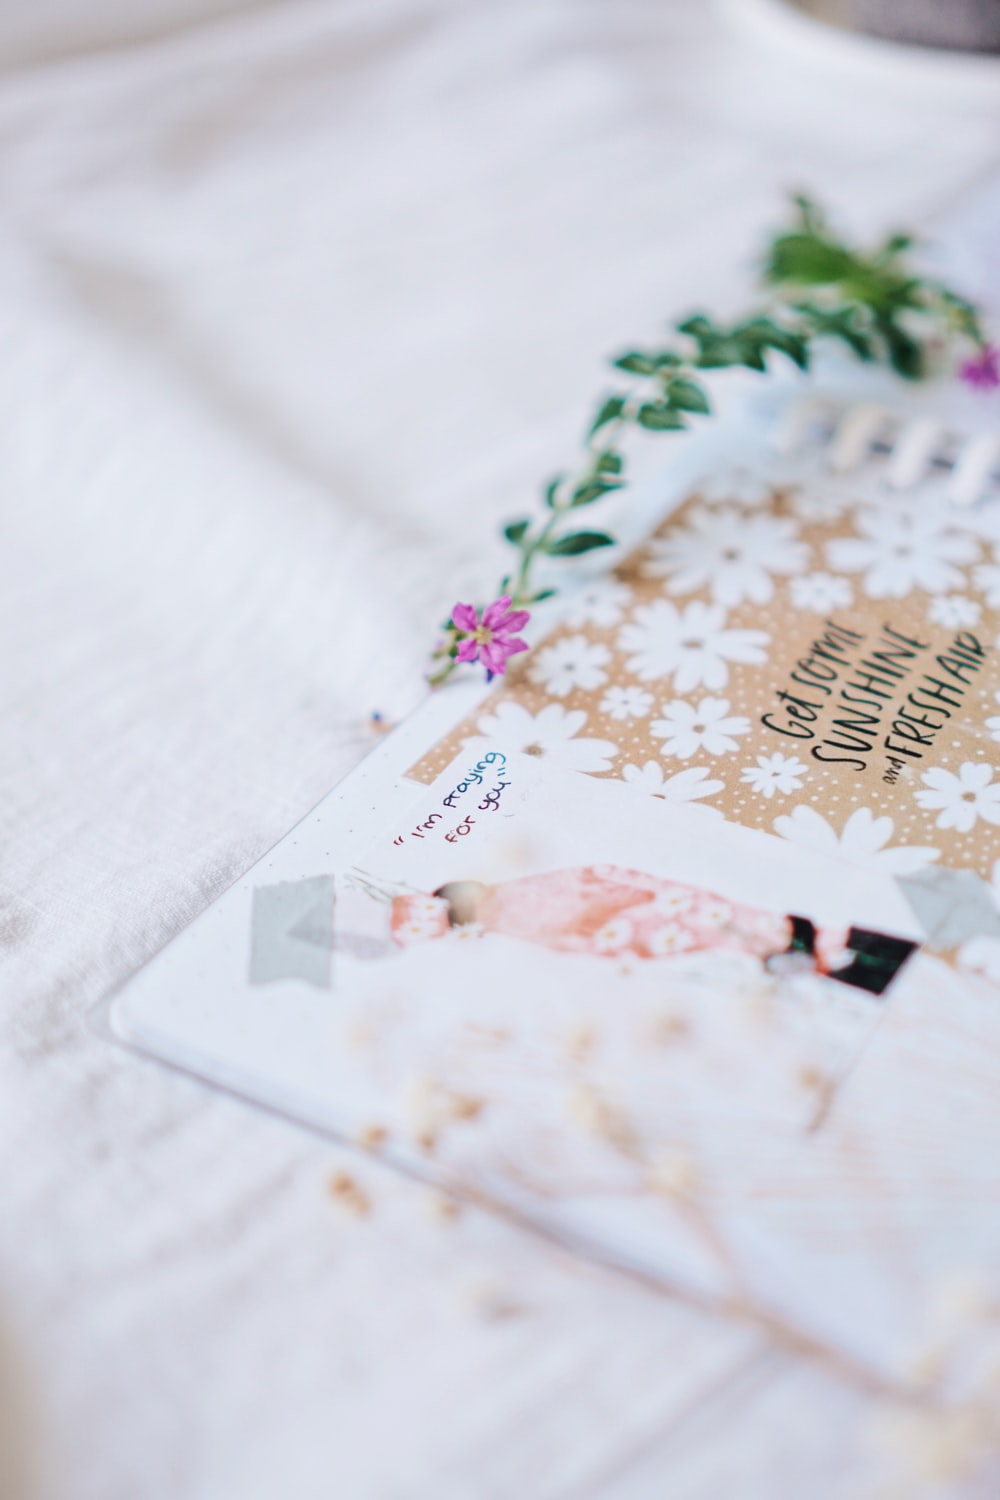 white and brown card on white textile